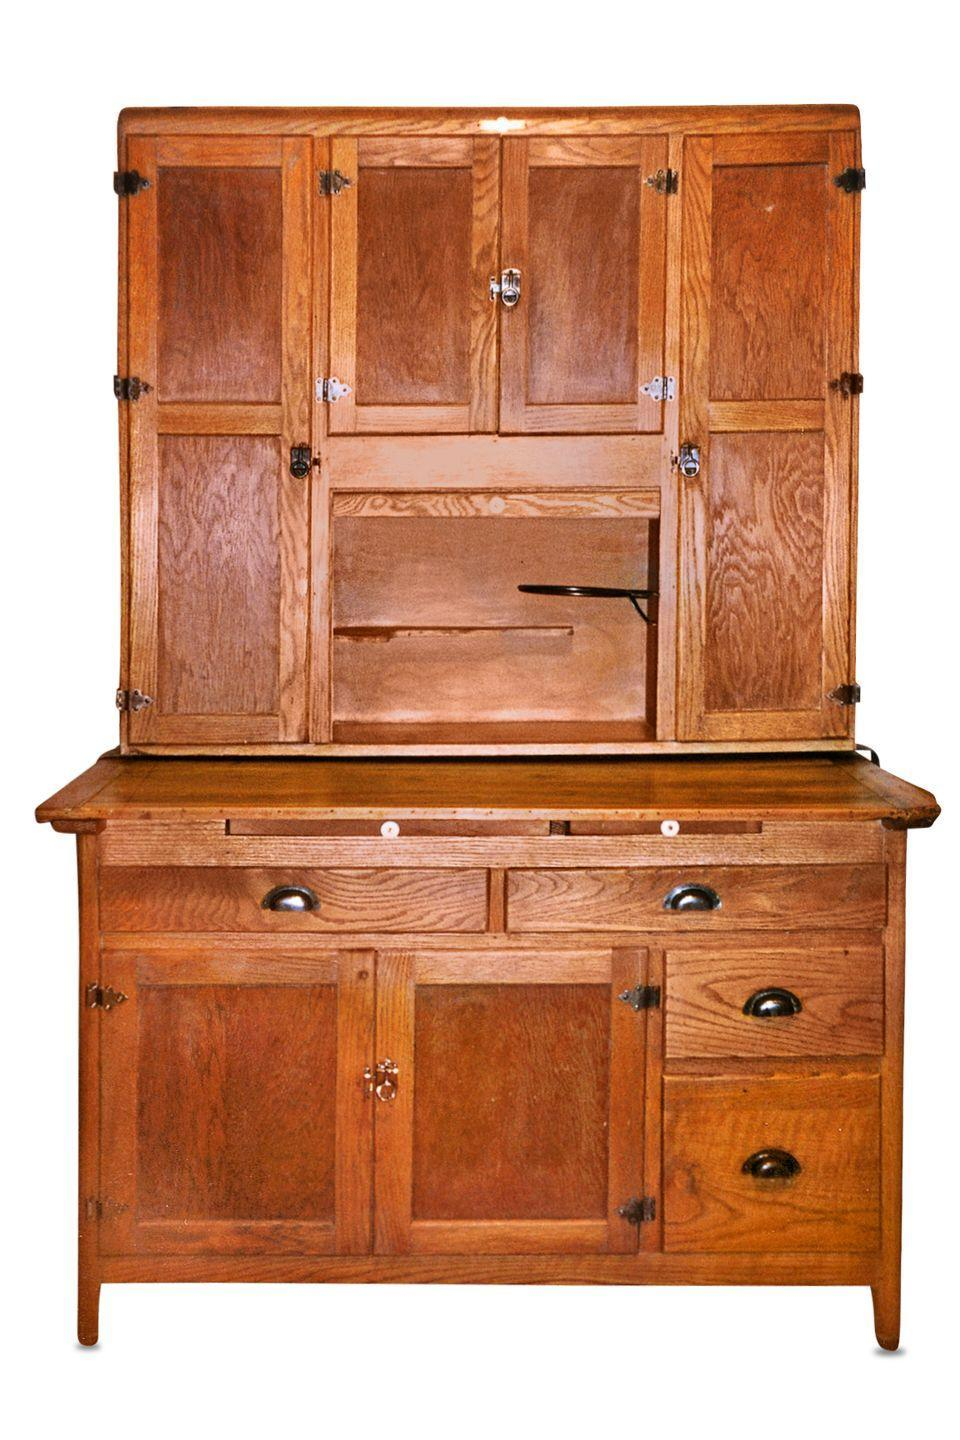 <p><strong>What it was worth (2008): </strong>$1,000</p><p><strong>What it's worth now:</strong> $1,800</p><p>This gorgeous cabinetry would fit perfectly in a cute country cottage.</p>